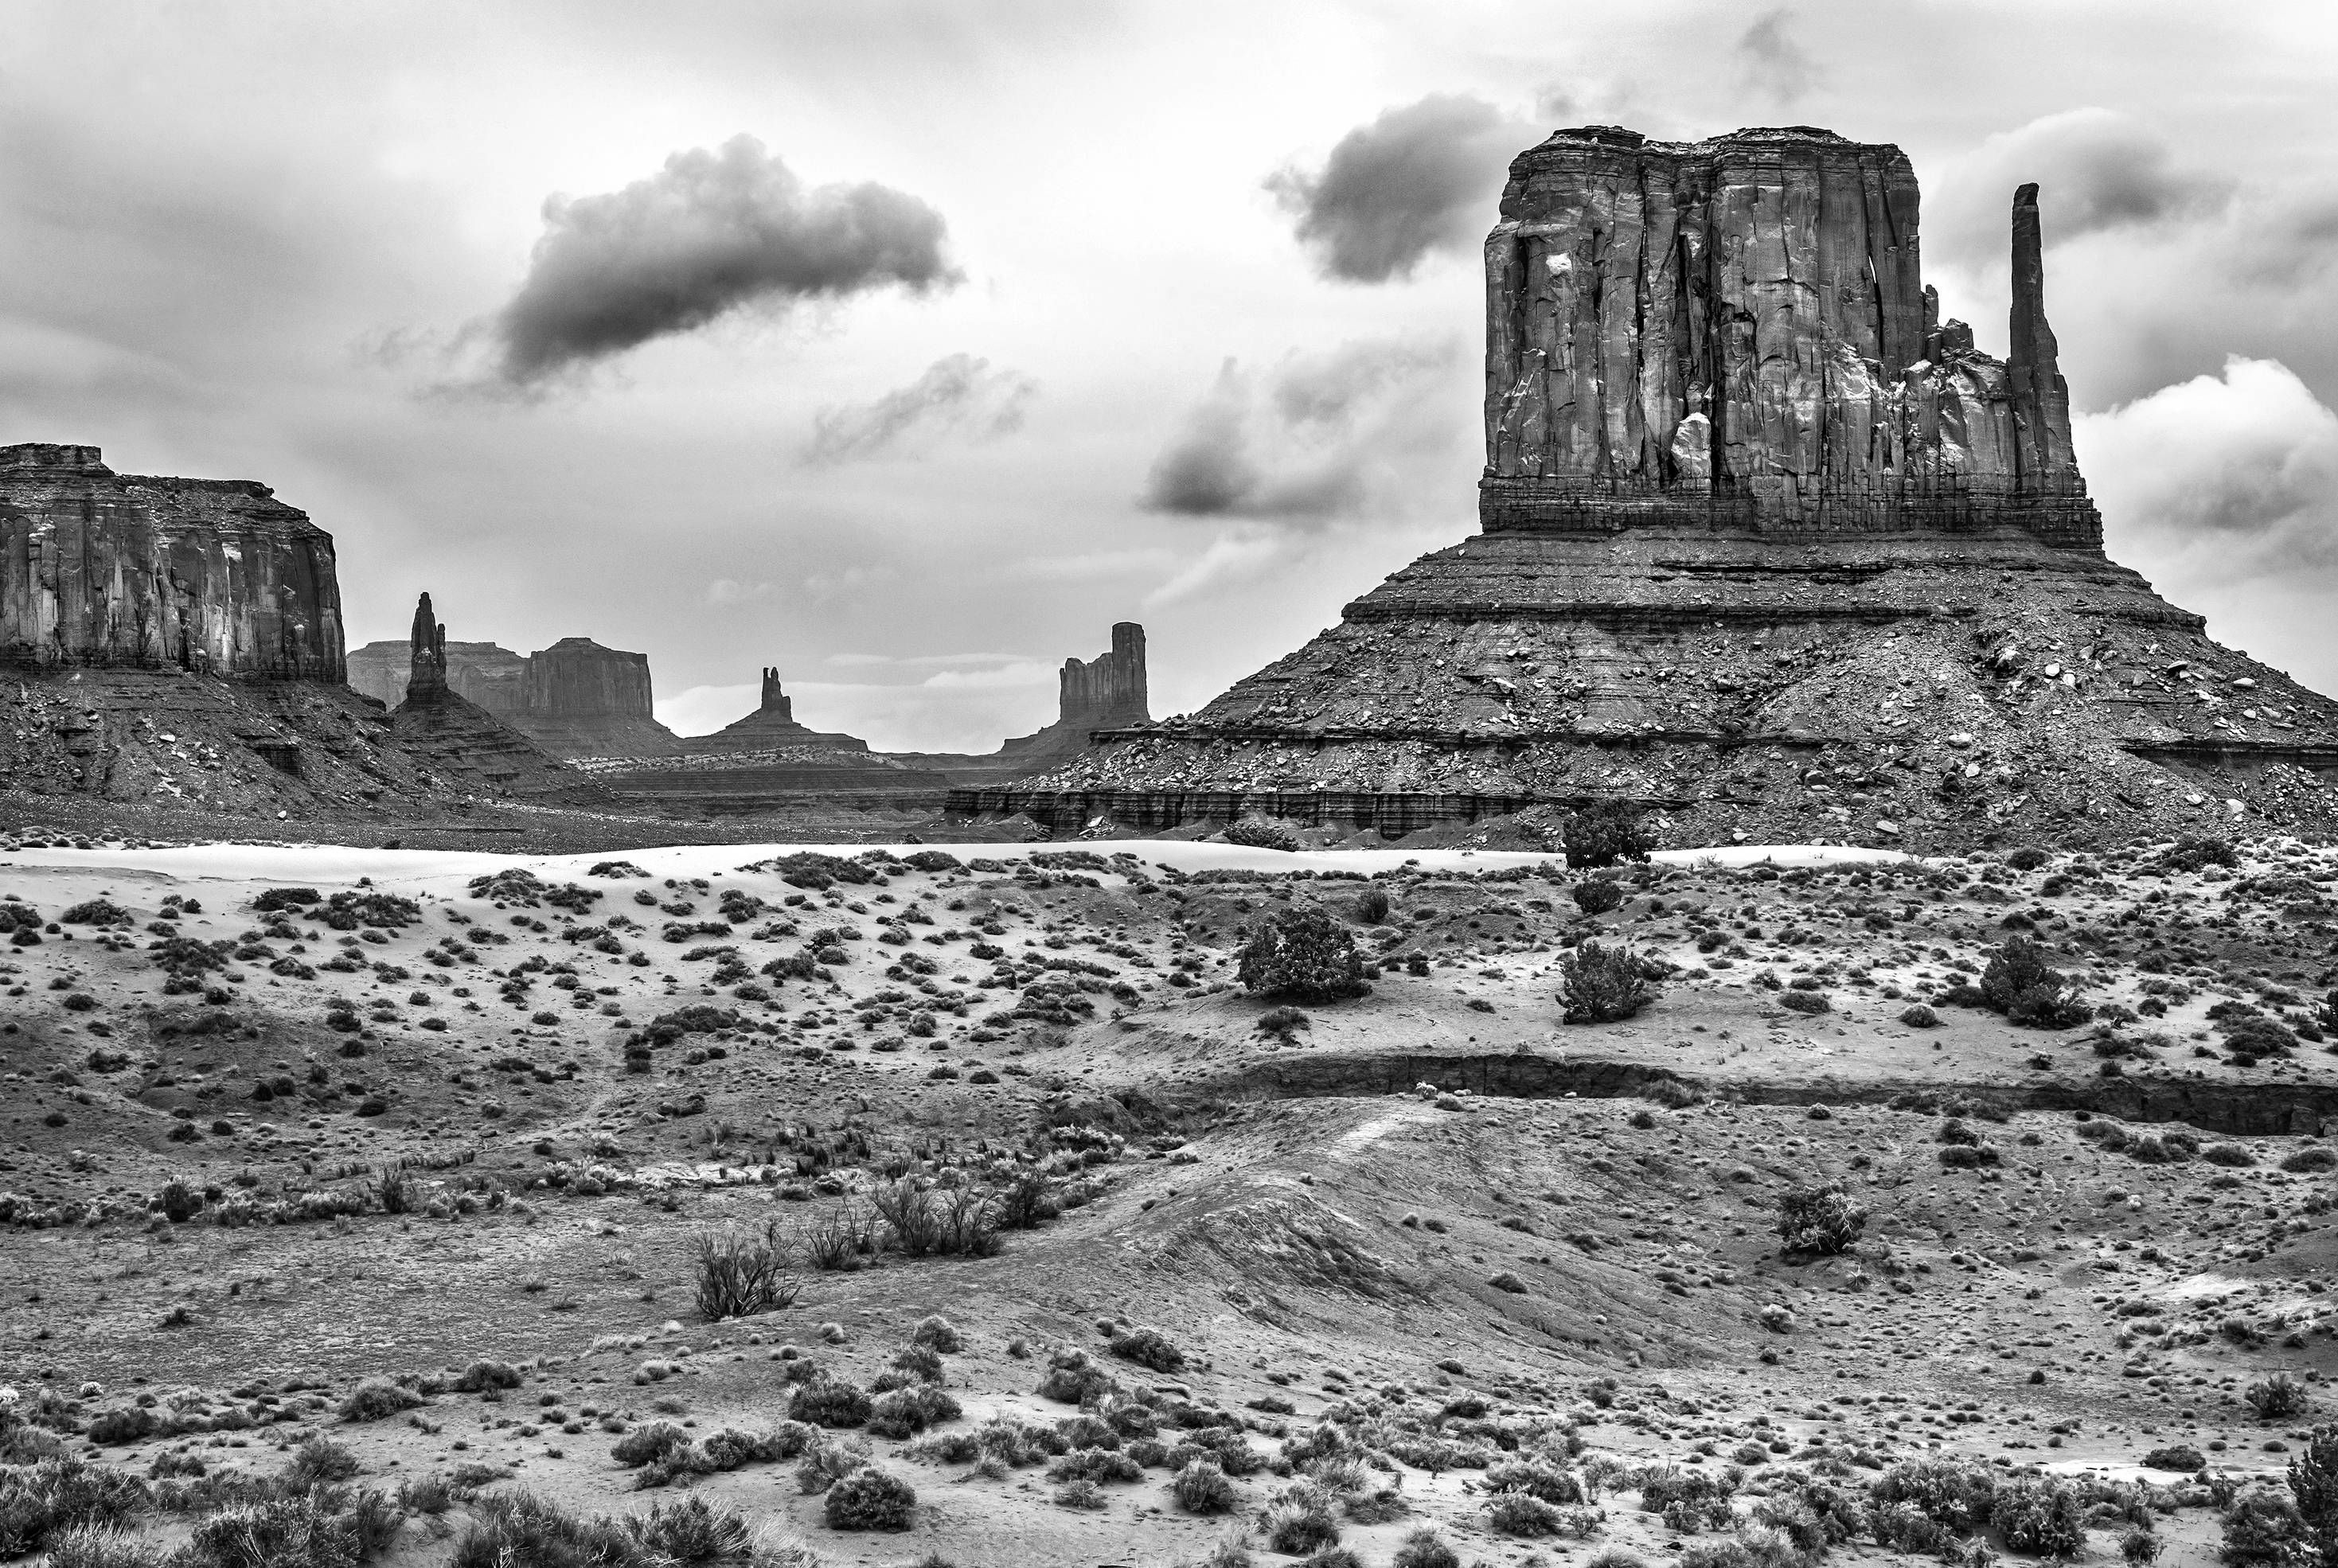 Monument Valley Southwest Wall Art Black And White Wall Etsy In 2021 Southwest Wall Art Monument Valley Wall Art